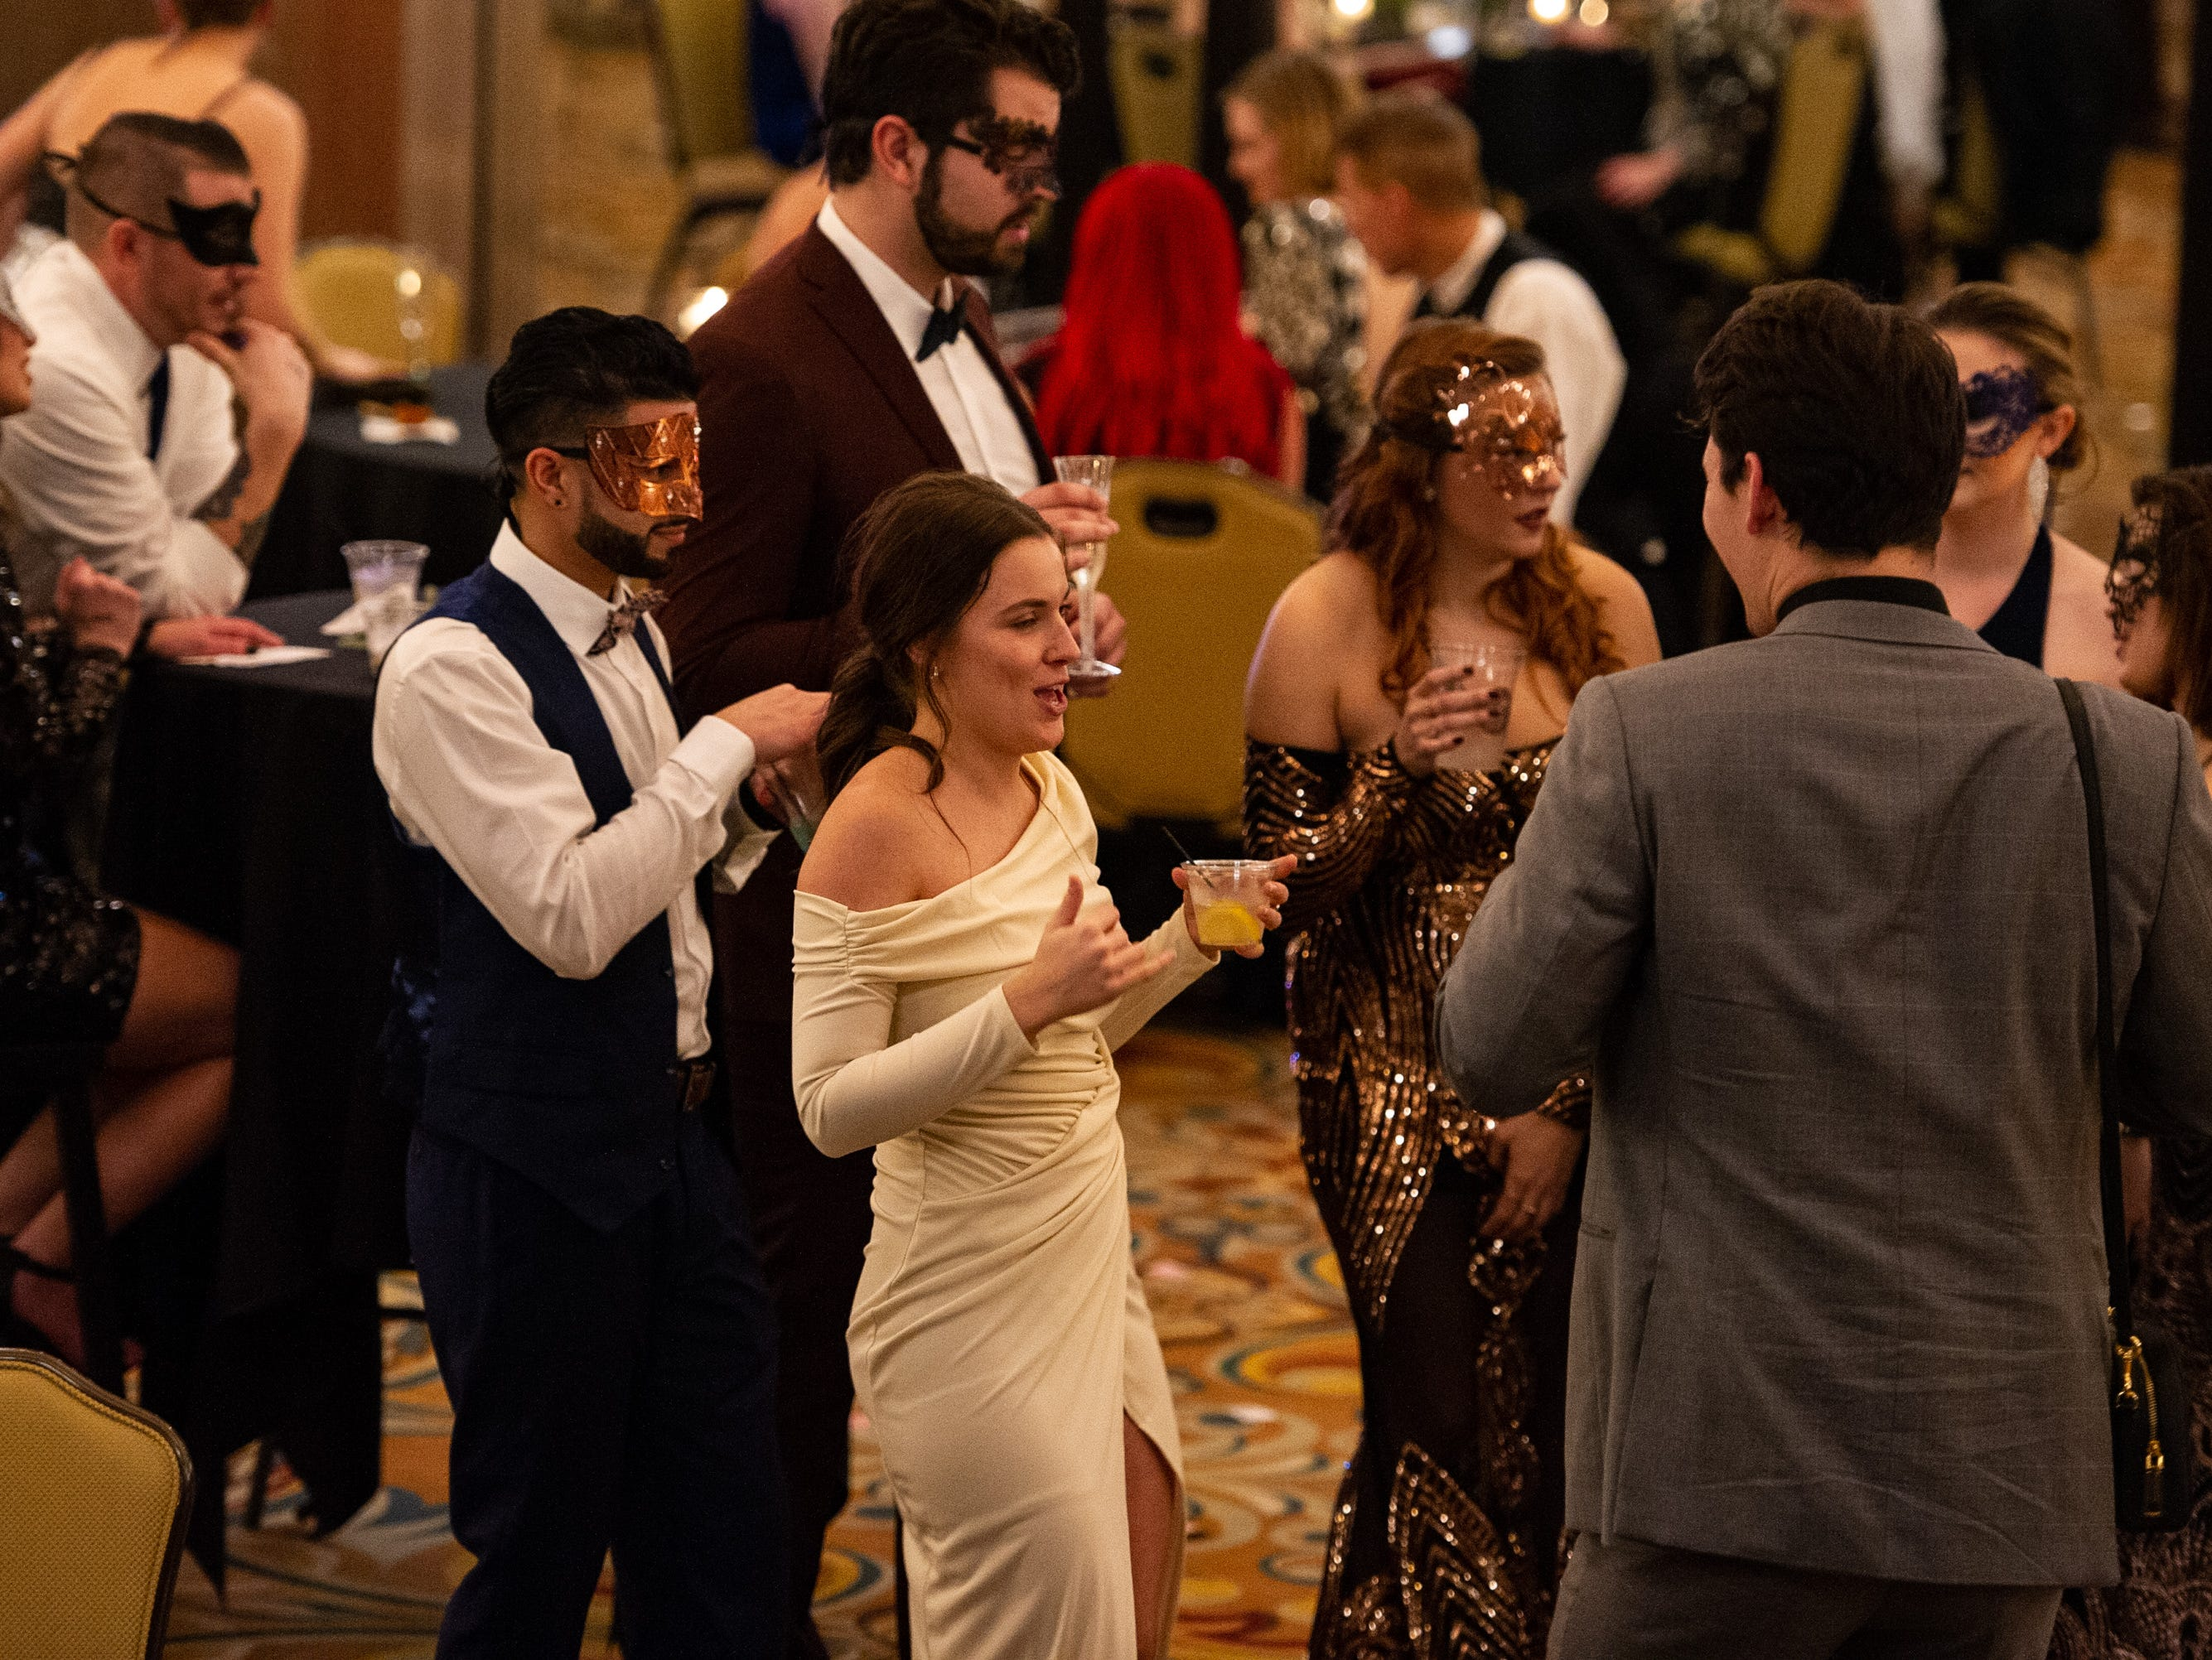 Guests mingle during the event Monday, Dec. 31, 2018, at The 12th Annual Indy Masquerade held at Union Station in Indianapolis.